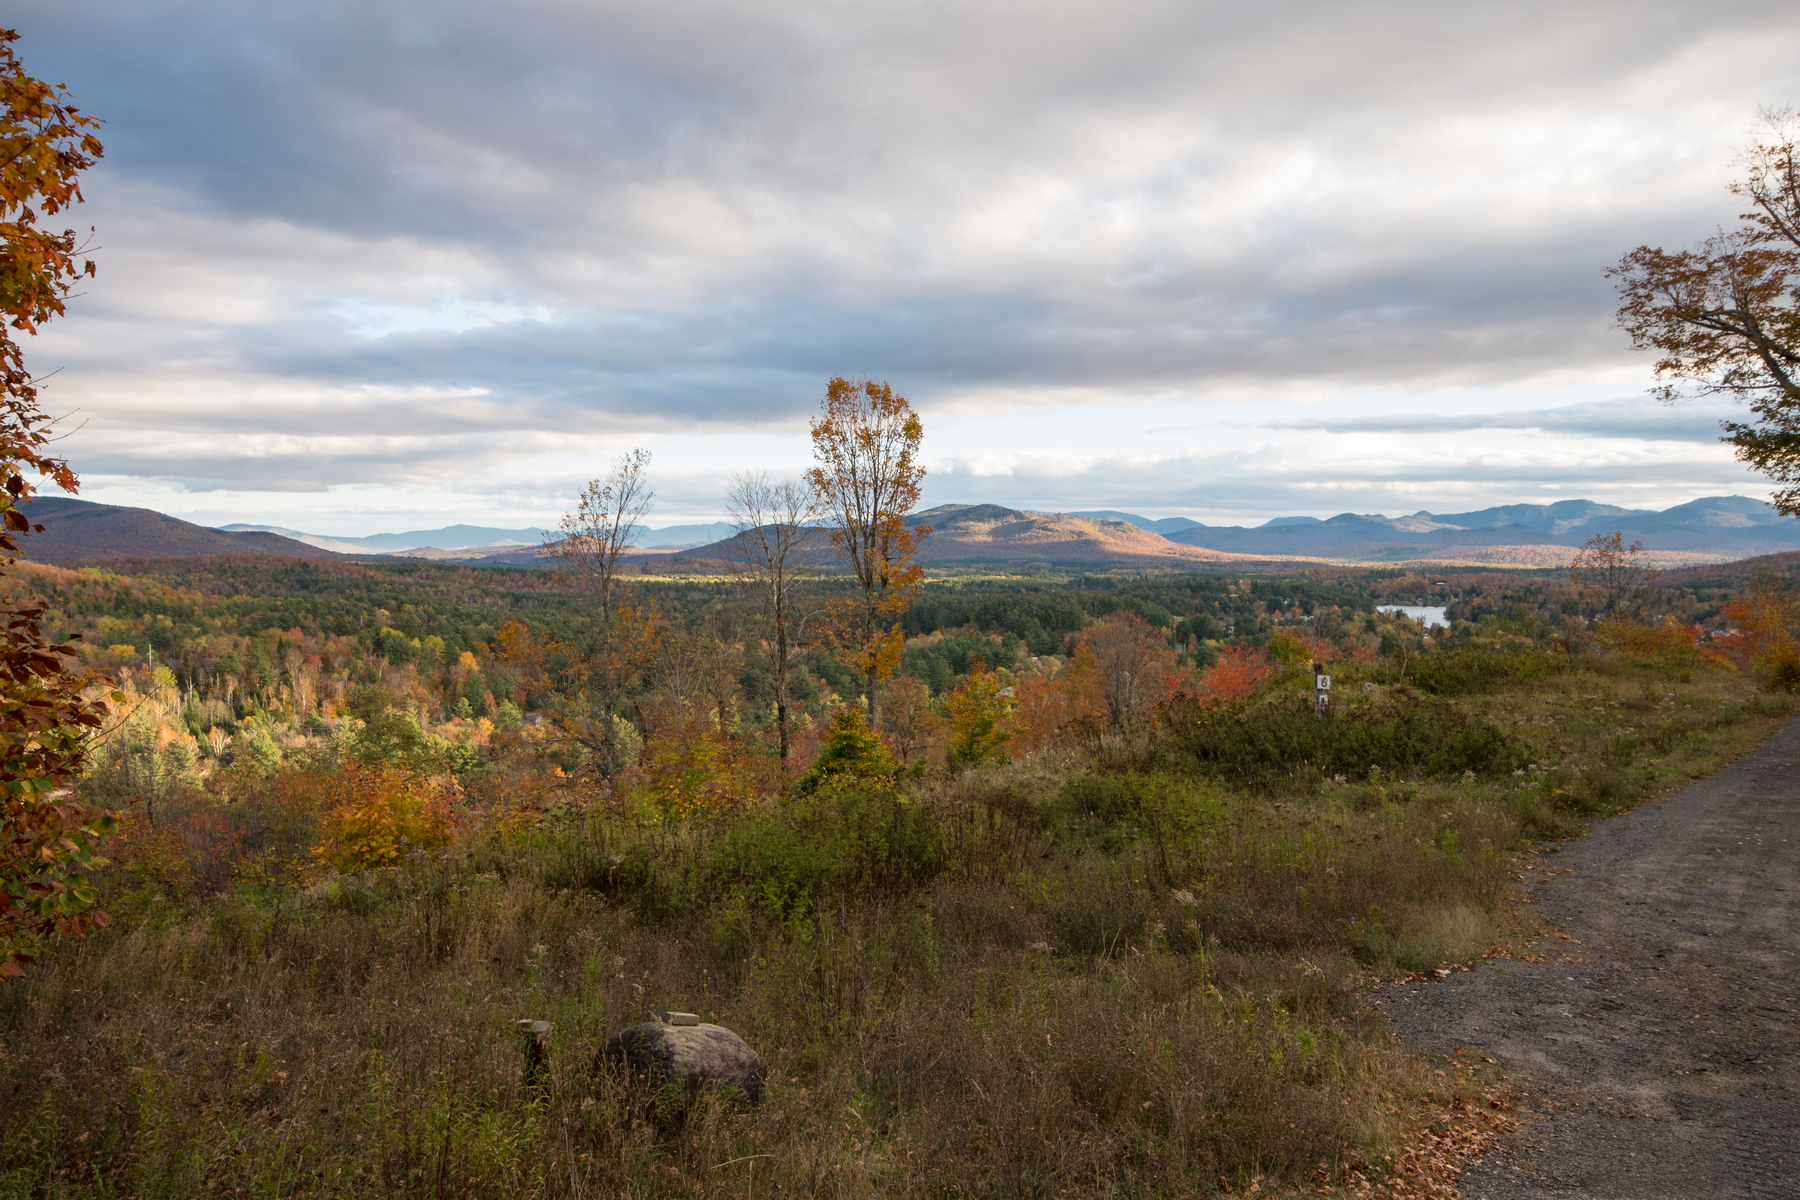 Commercial for Sale at Saranac Lake Building Lot with Panoramic Views 9 Palisade Saranac Lake, New York 12983 United States